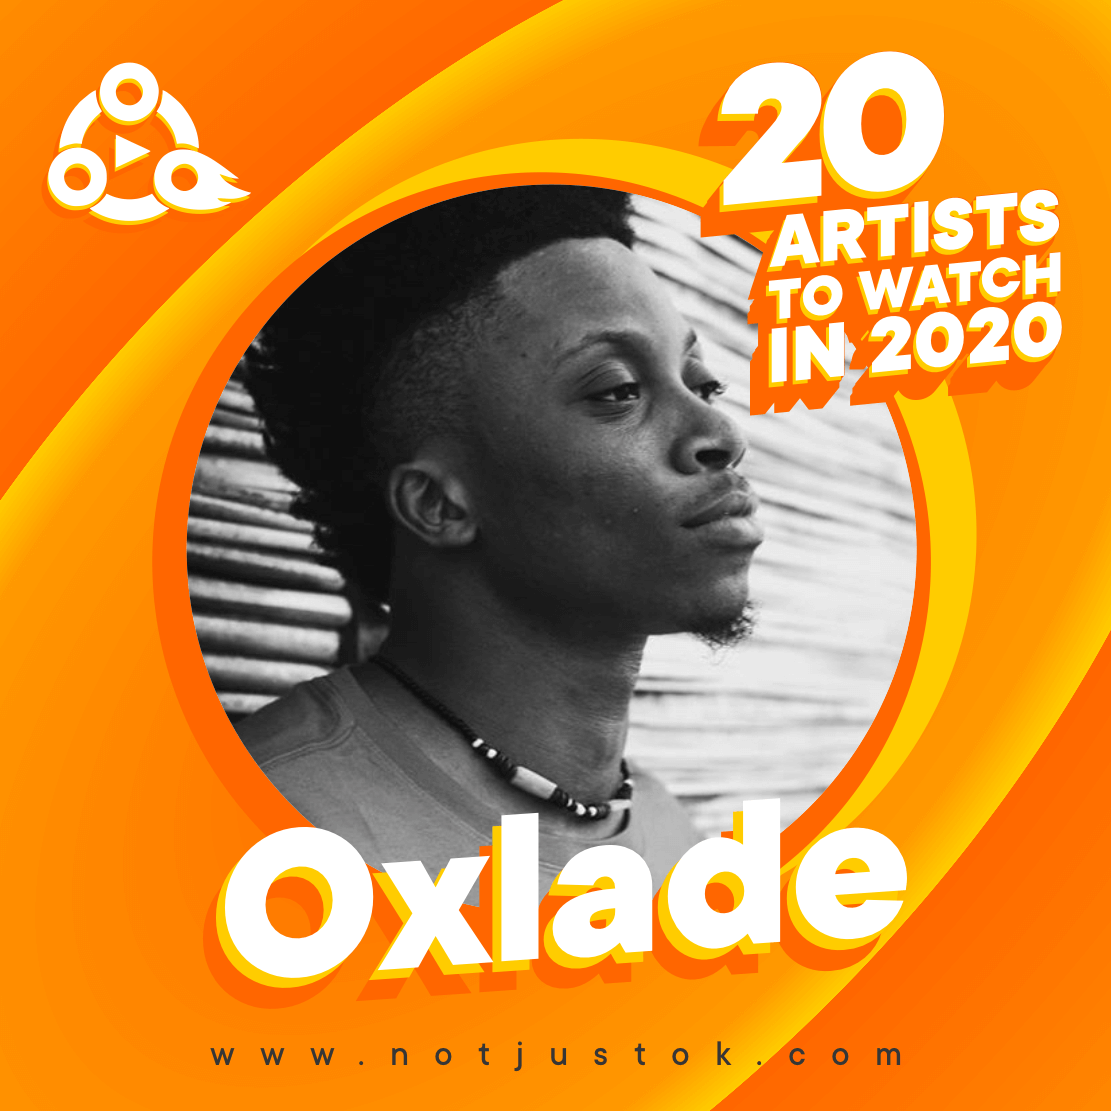 The 20 Artists To Watch In 2020 - Oxlade